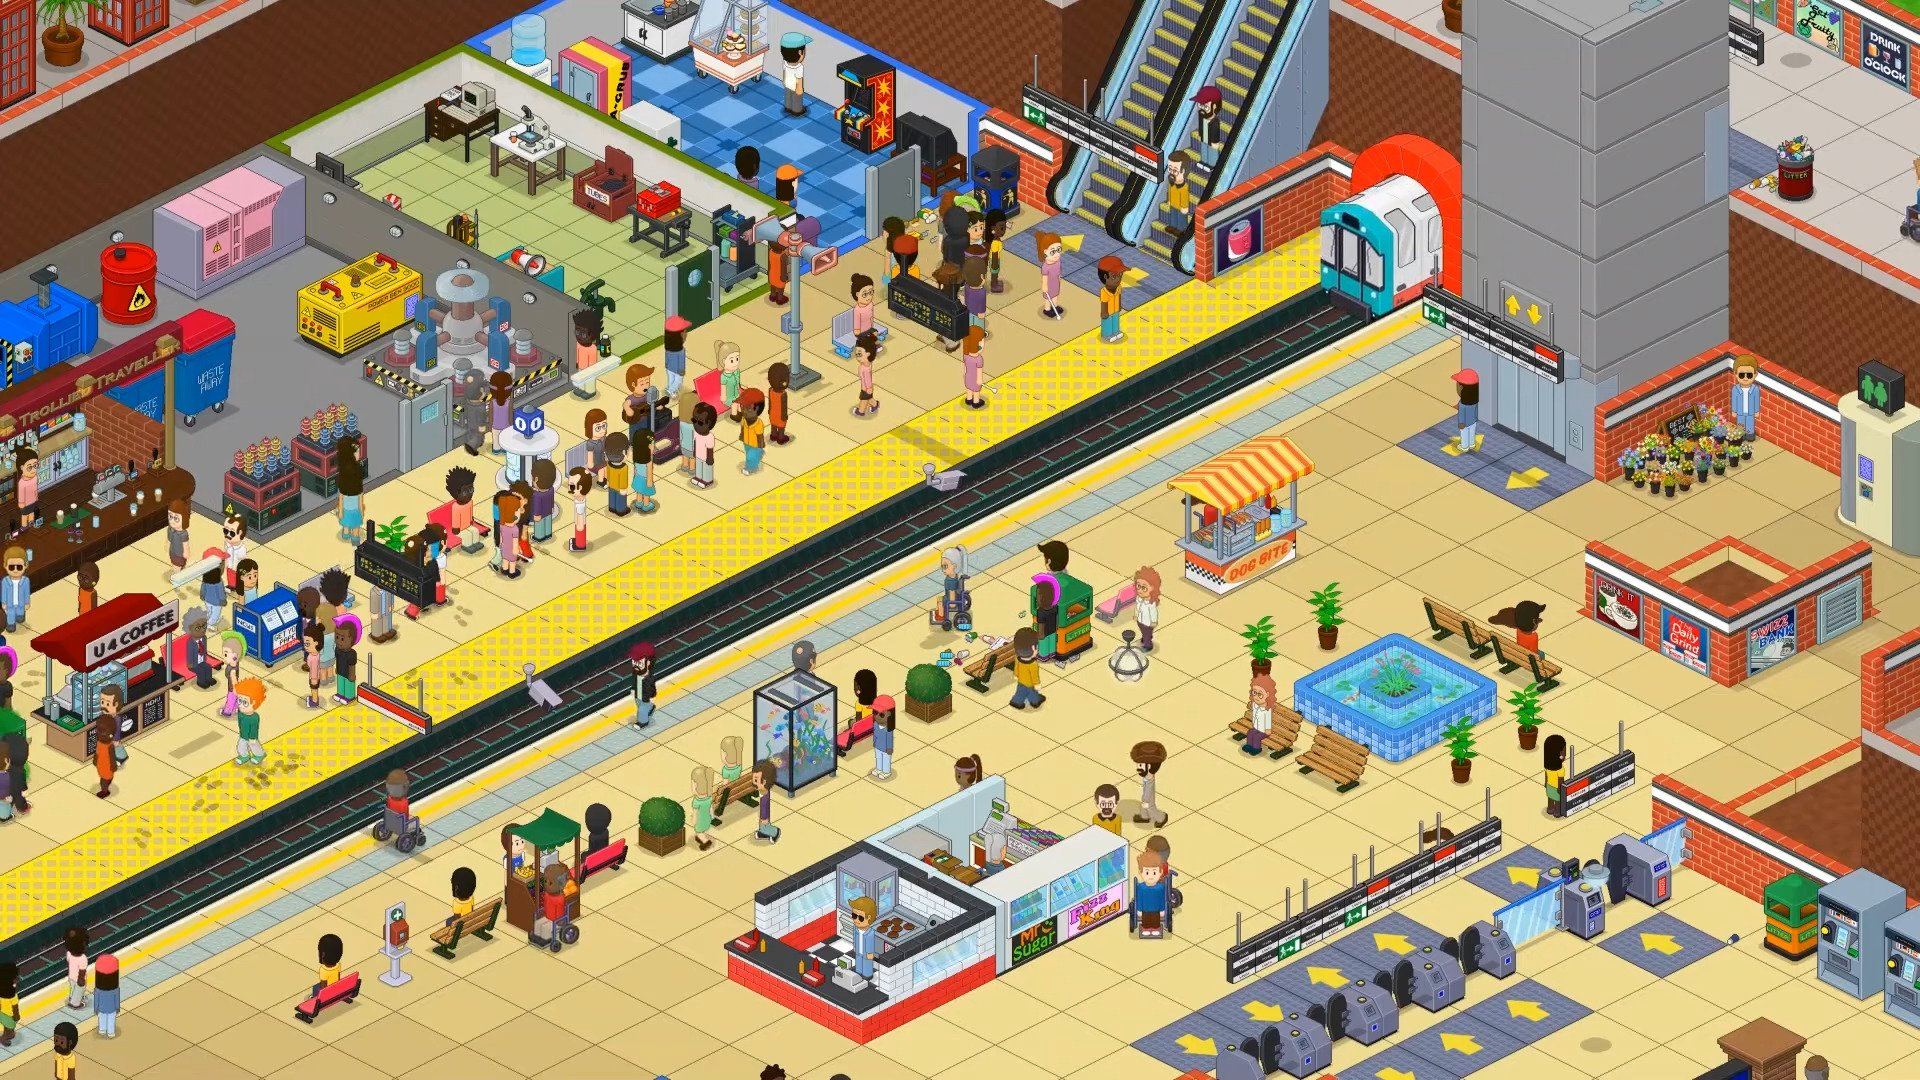 Overcrowd: A Commute 'Em Up Full Release Review – A Sim Management Game With A Difference